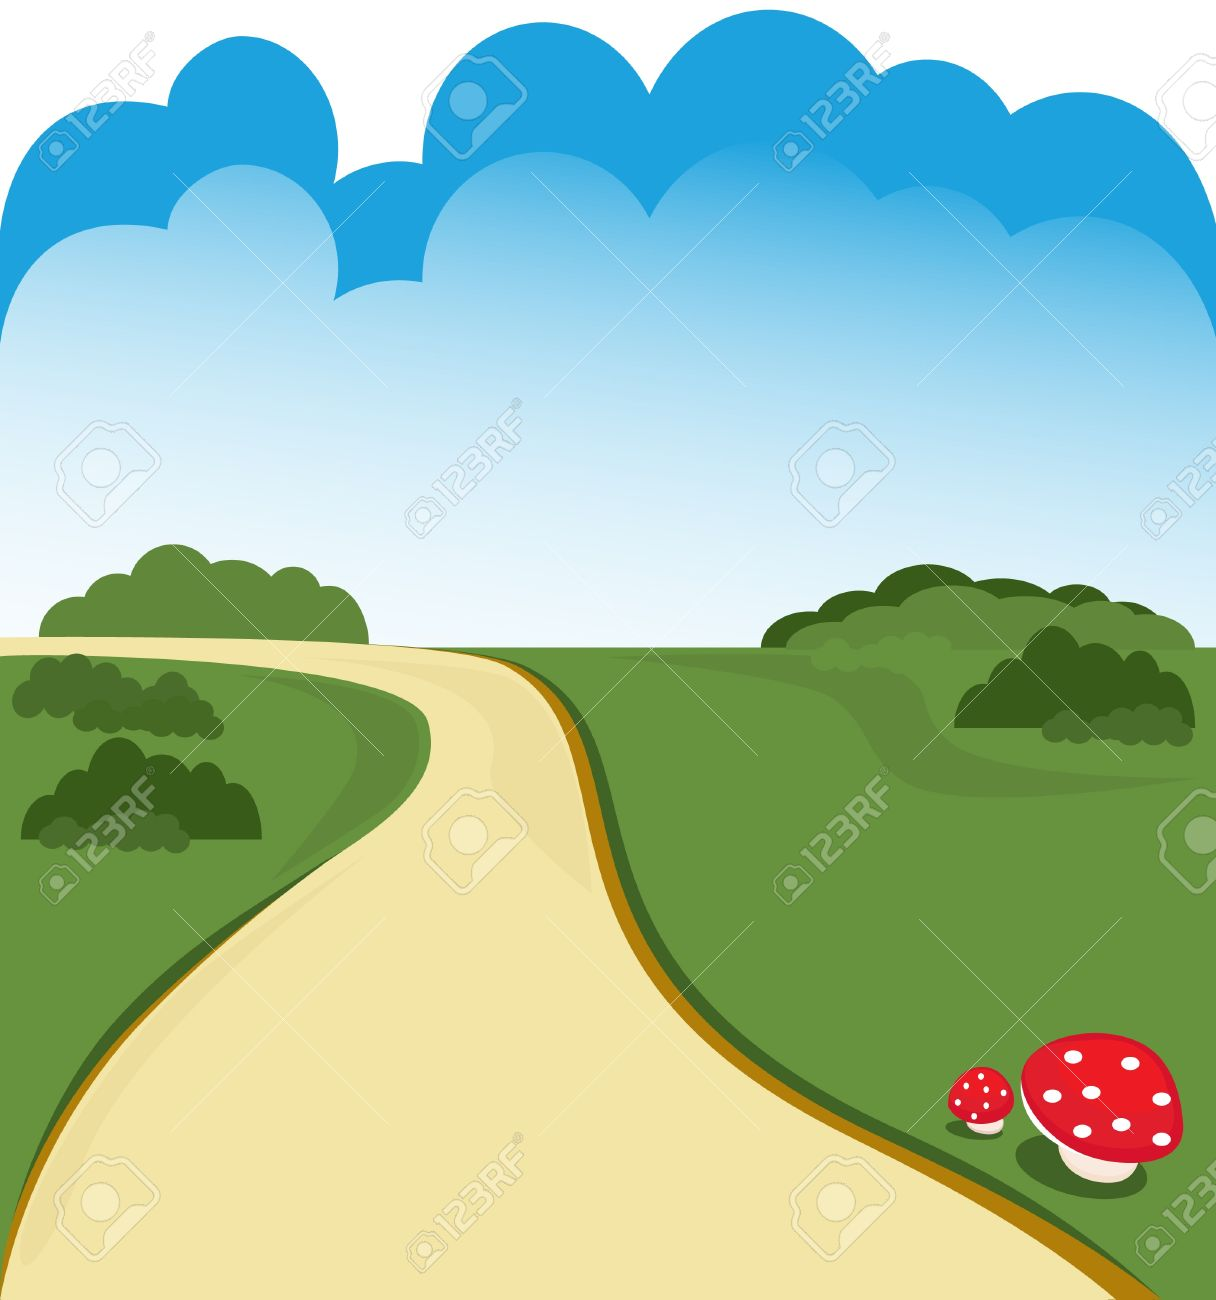 clip art transparent download Highway rural road transparent. Yard clipart grassy path